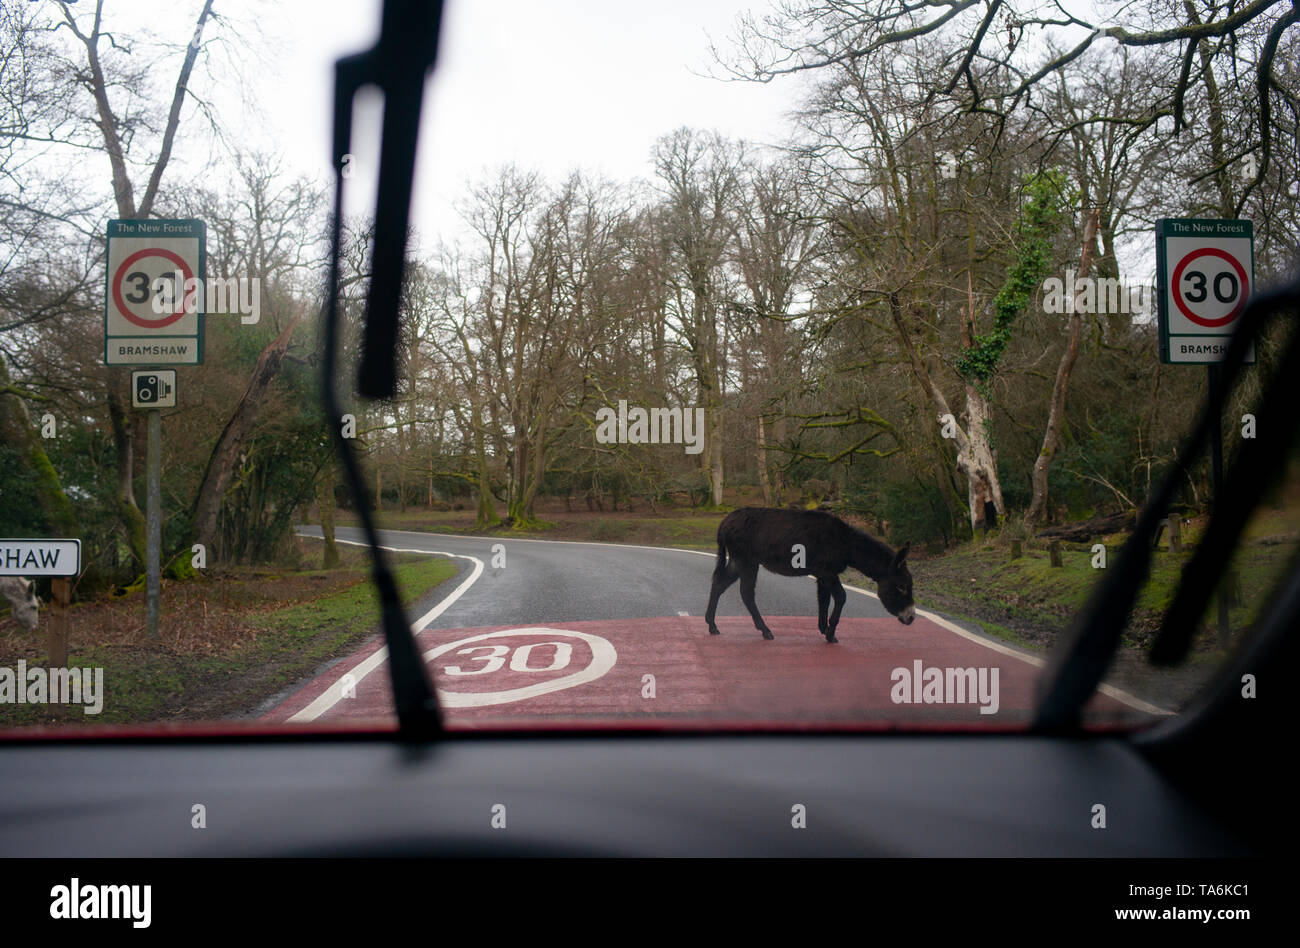 A donkey in the New Forest national park England walks across the road over a 30 MPH speed limit warning road markings seen from the POV of a driver. Stock Photo